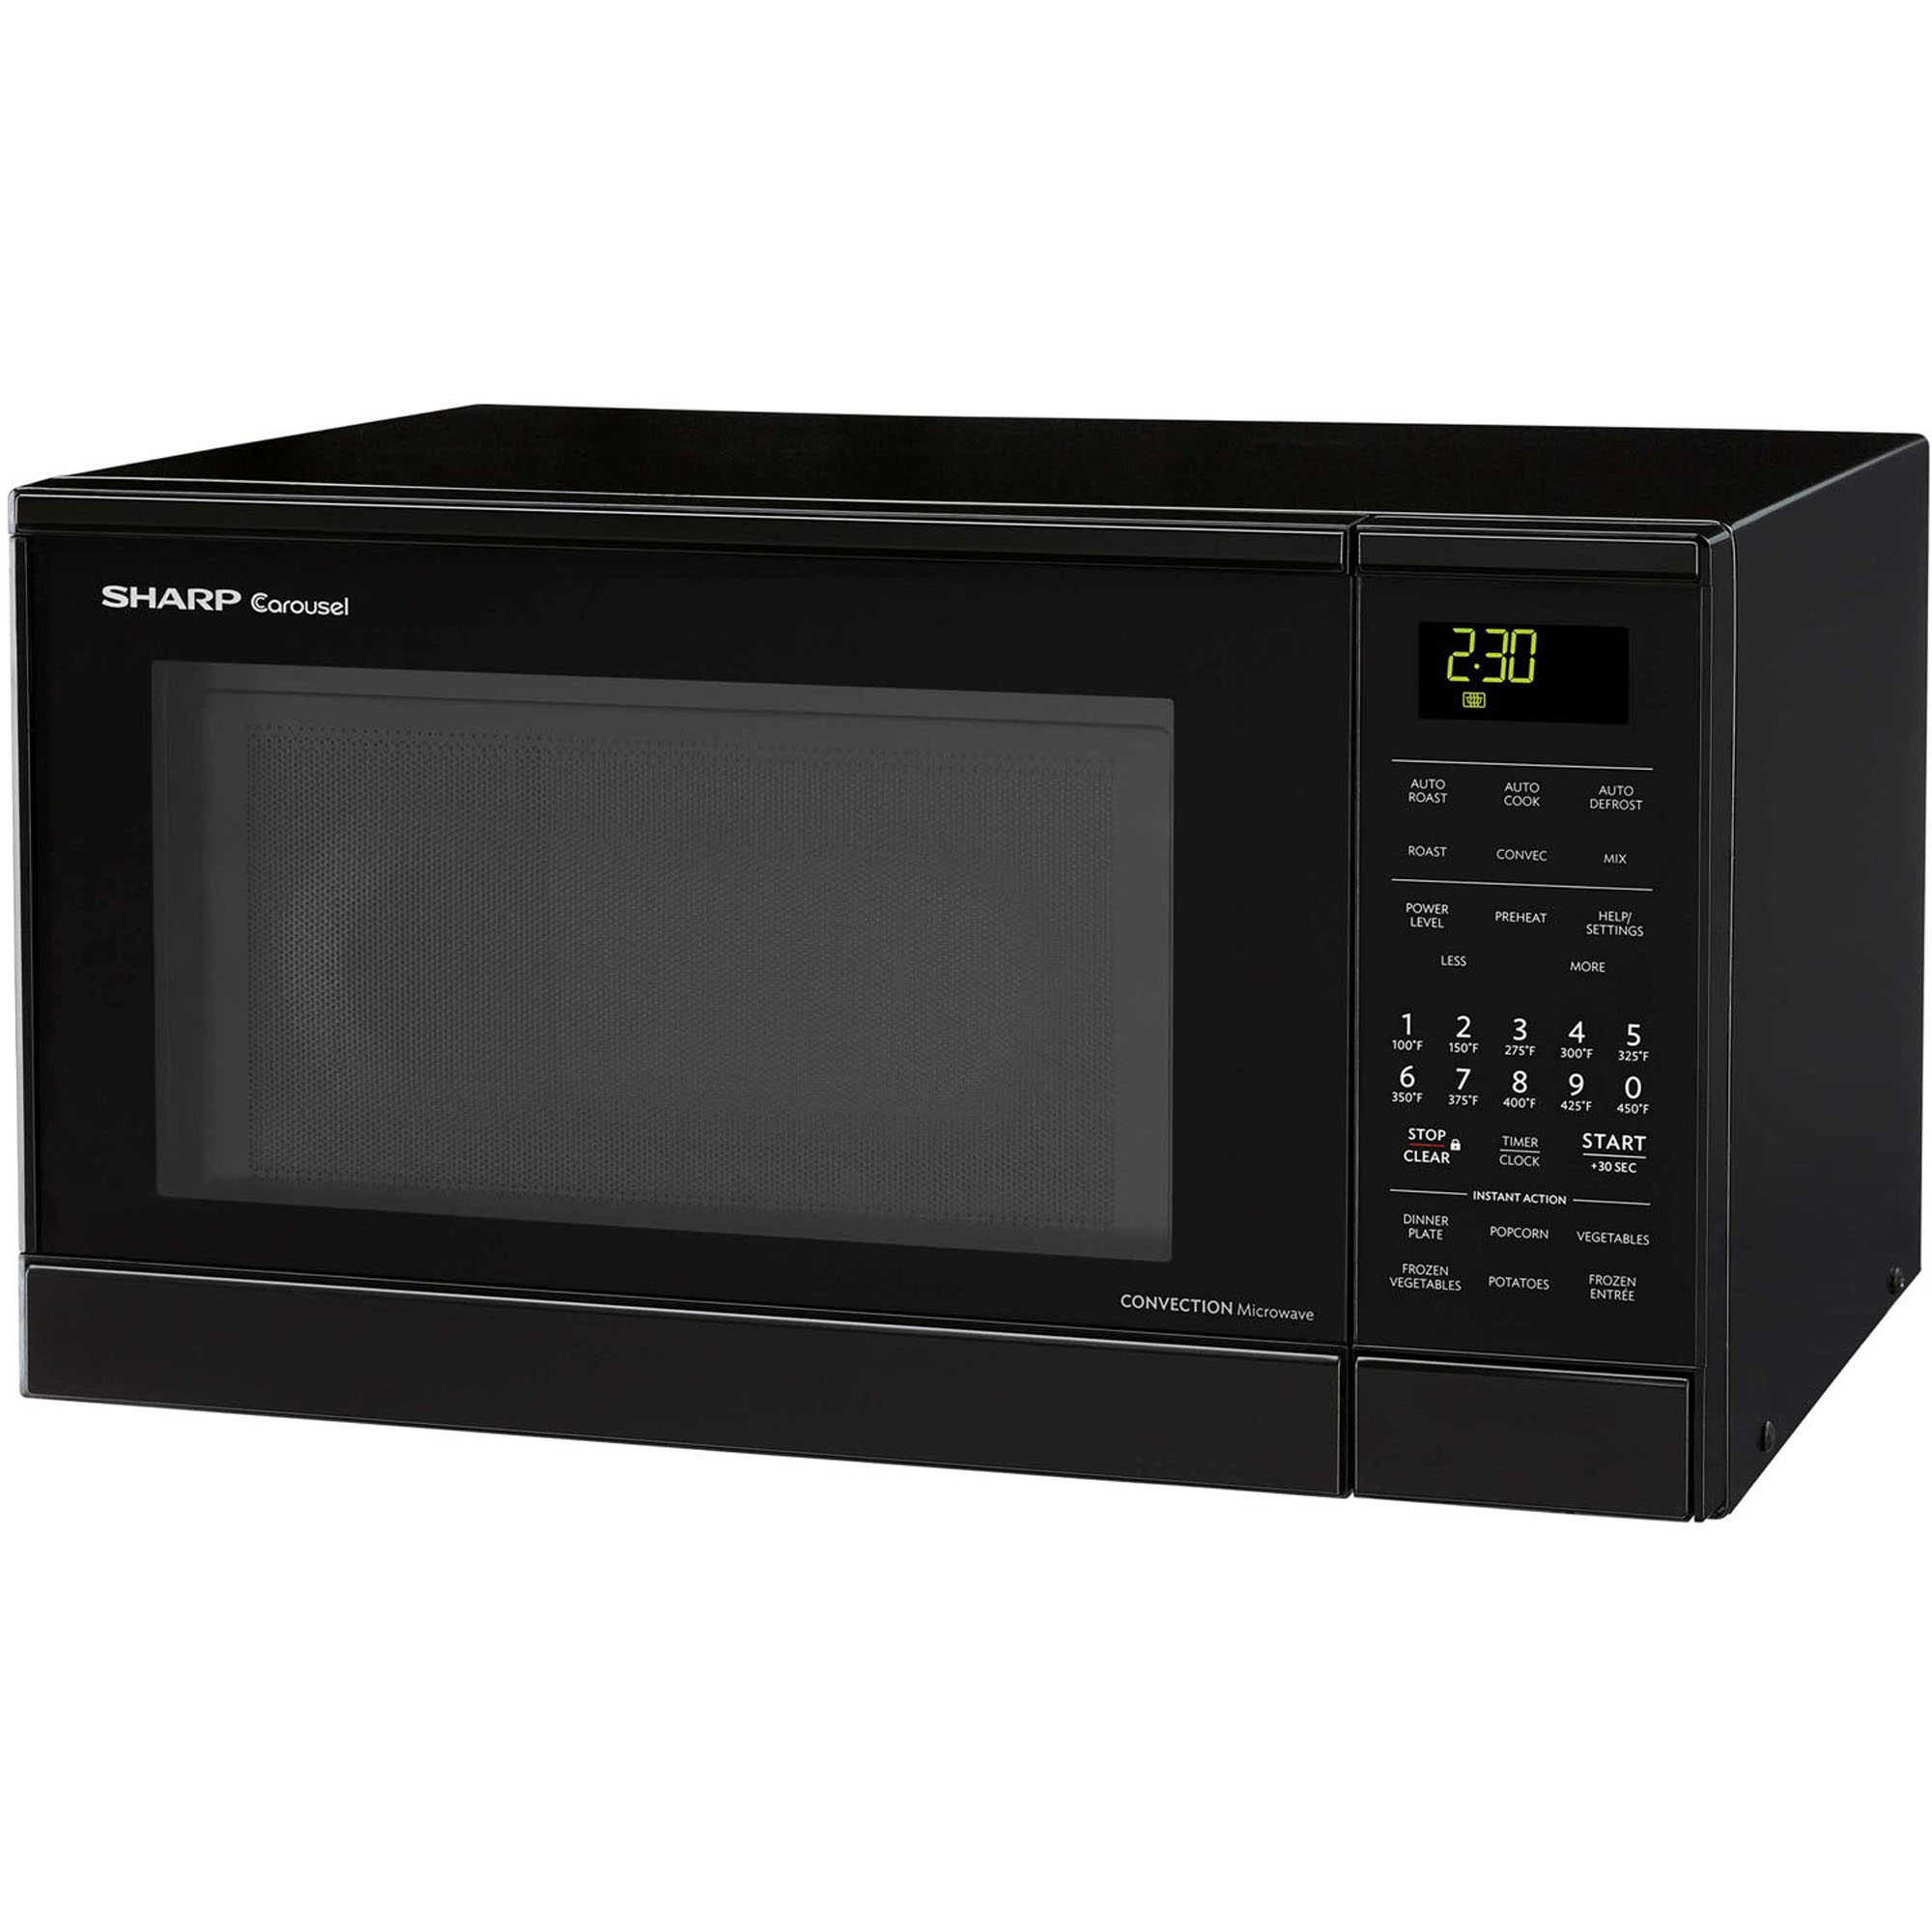 Sharp Carousel Microwave Convection Oven Bestmicrowave